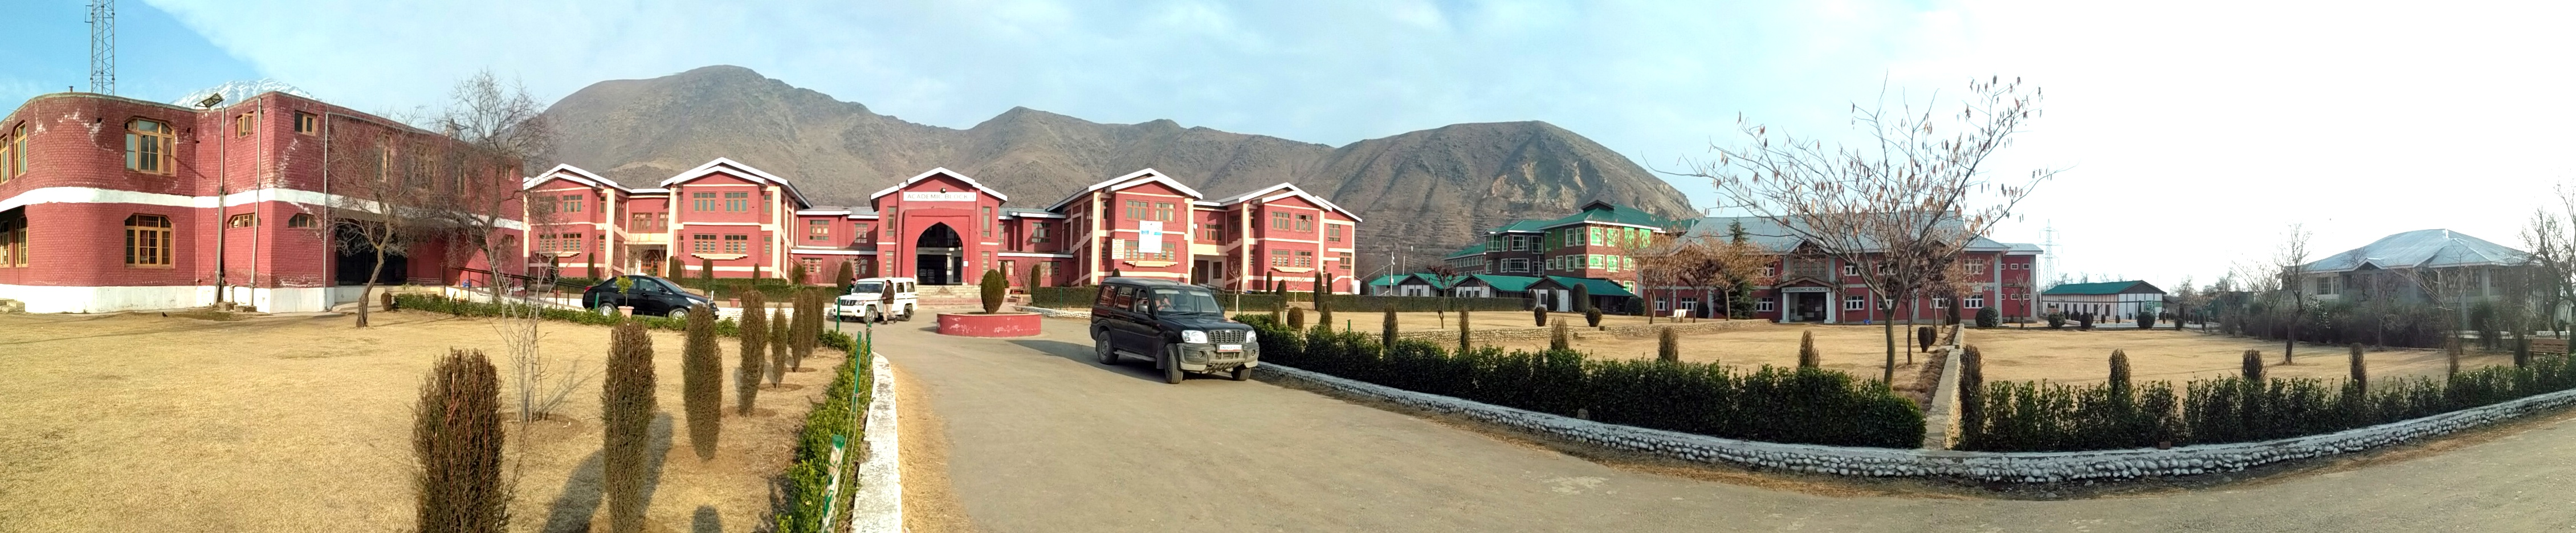 Syed Mantaqi Memorial College Of Nursing and Medical Technology Image